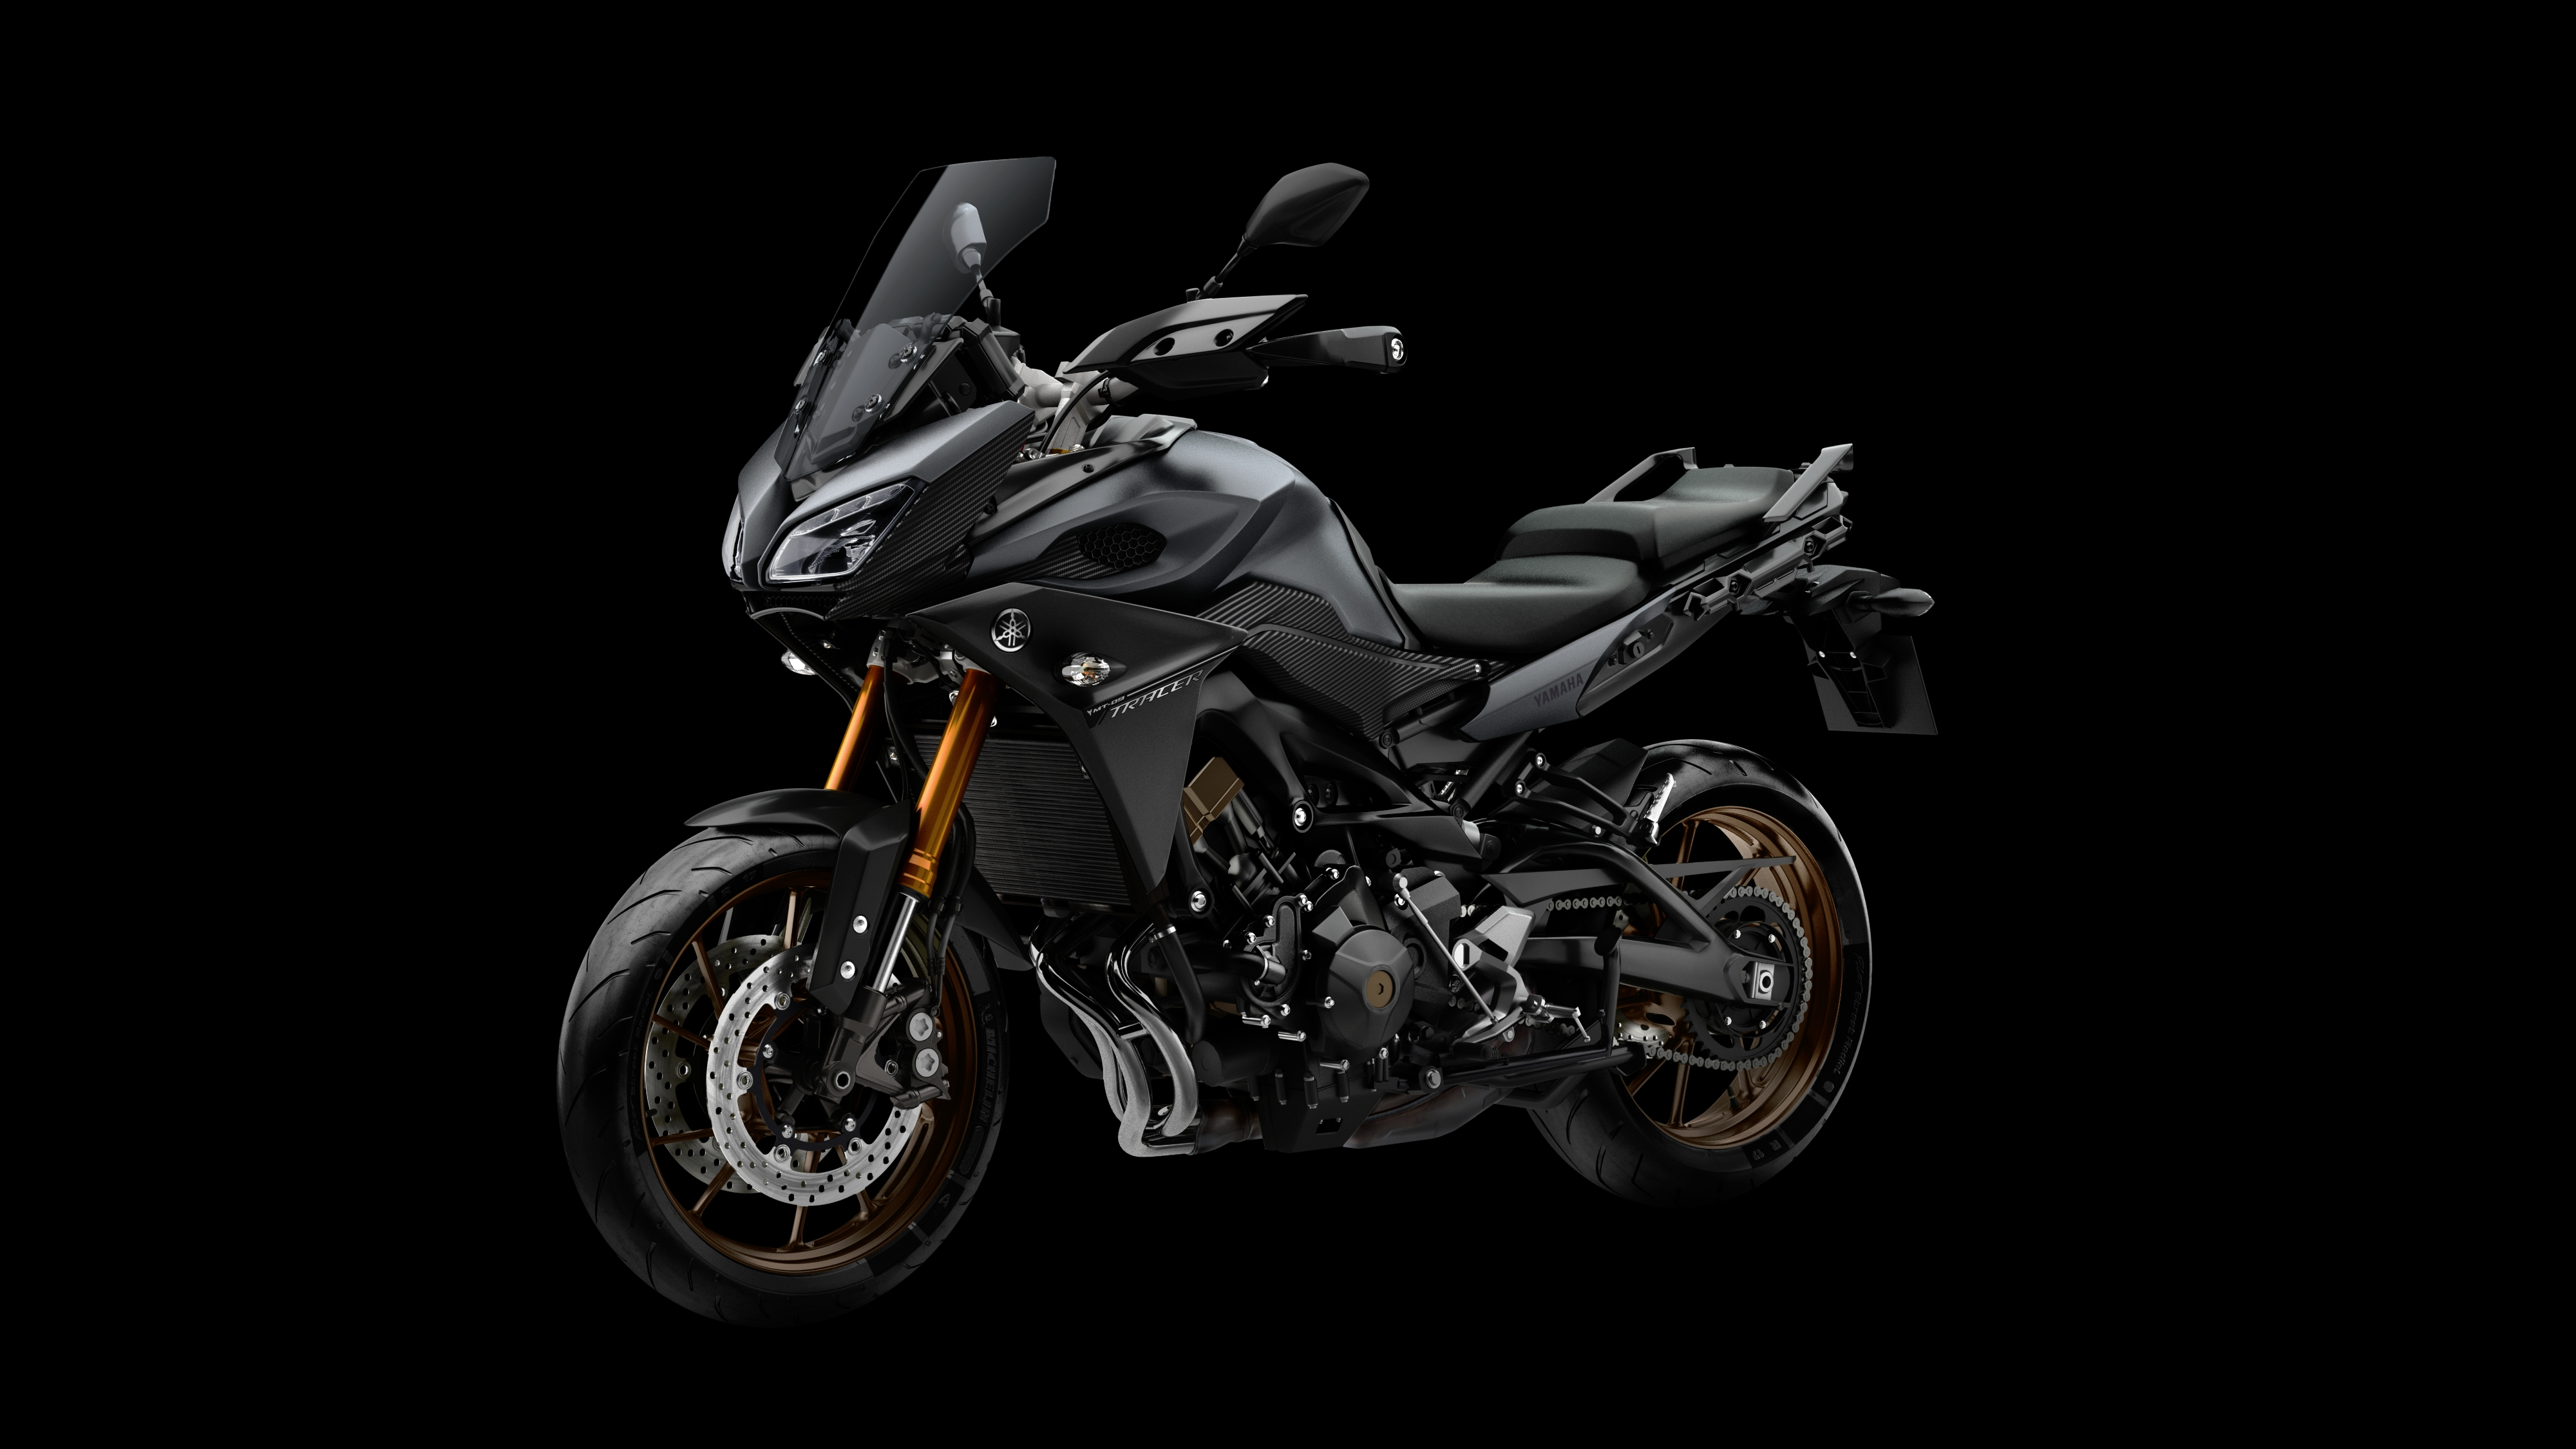 2016 yamaha mt 09 tracer in malaysia rm59 900 paul tan image 514855. Black Bedroom Furniture Sets. Home Design Ideas